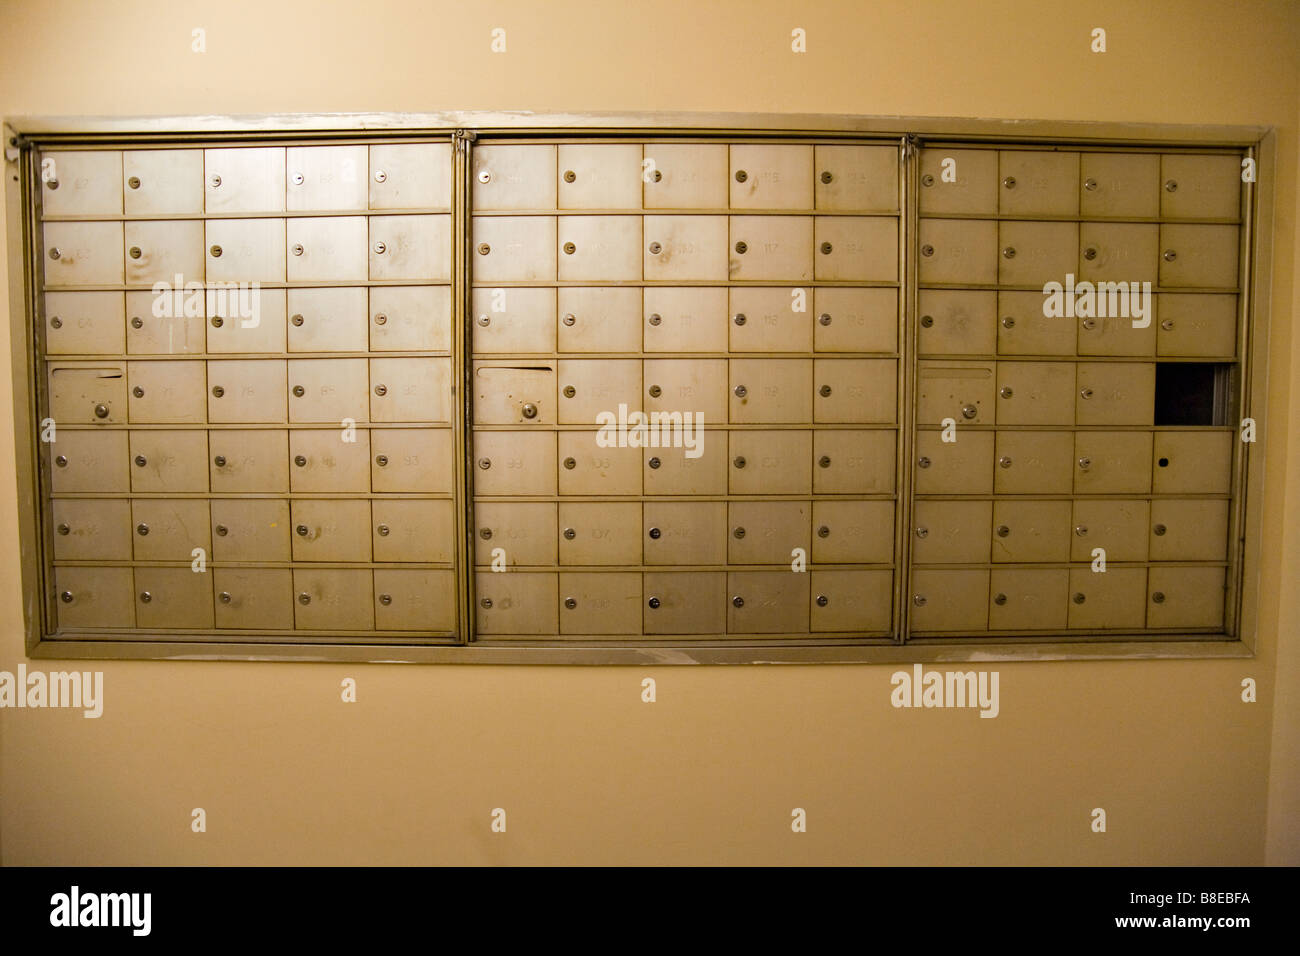 Mailboxes in an apartment building. Stock Photo